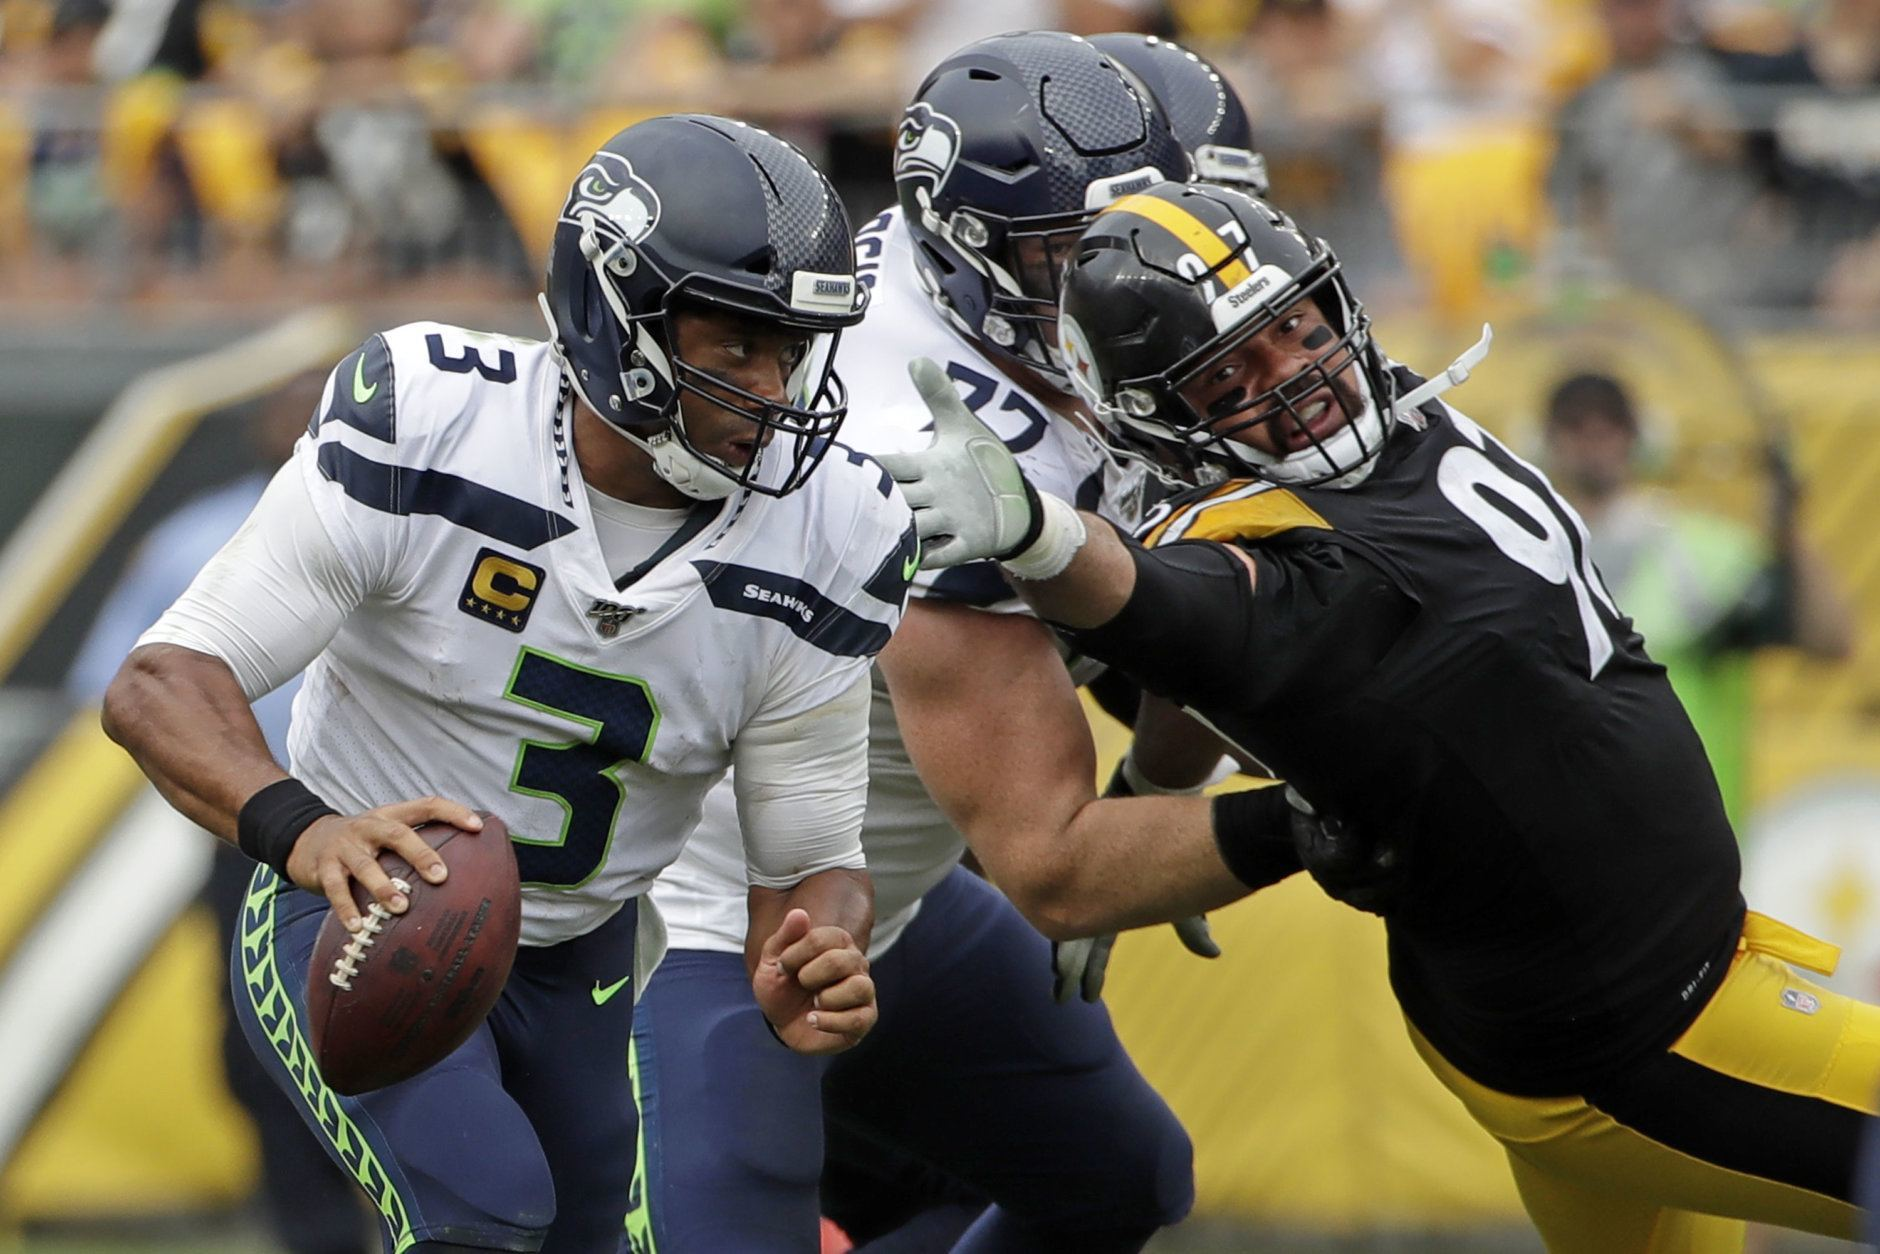 <p><b><i>Seahawks 28</i></b><br /> <b><i>Steelers 26</i></b></p> <p>It was a confluence of historical achievements for the Seahawks: Pete Carroll celebrated his 68th birthday with his 100th career victory as a head coach and Russell Wilson became the second sub-6-foot QB to throw for 200 touchdowns in his career (joining Redskins legend Sonny Jurgensen). I don&#8217;t think anyone&#8217;s sleeping on Seattle this year.</p>